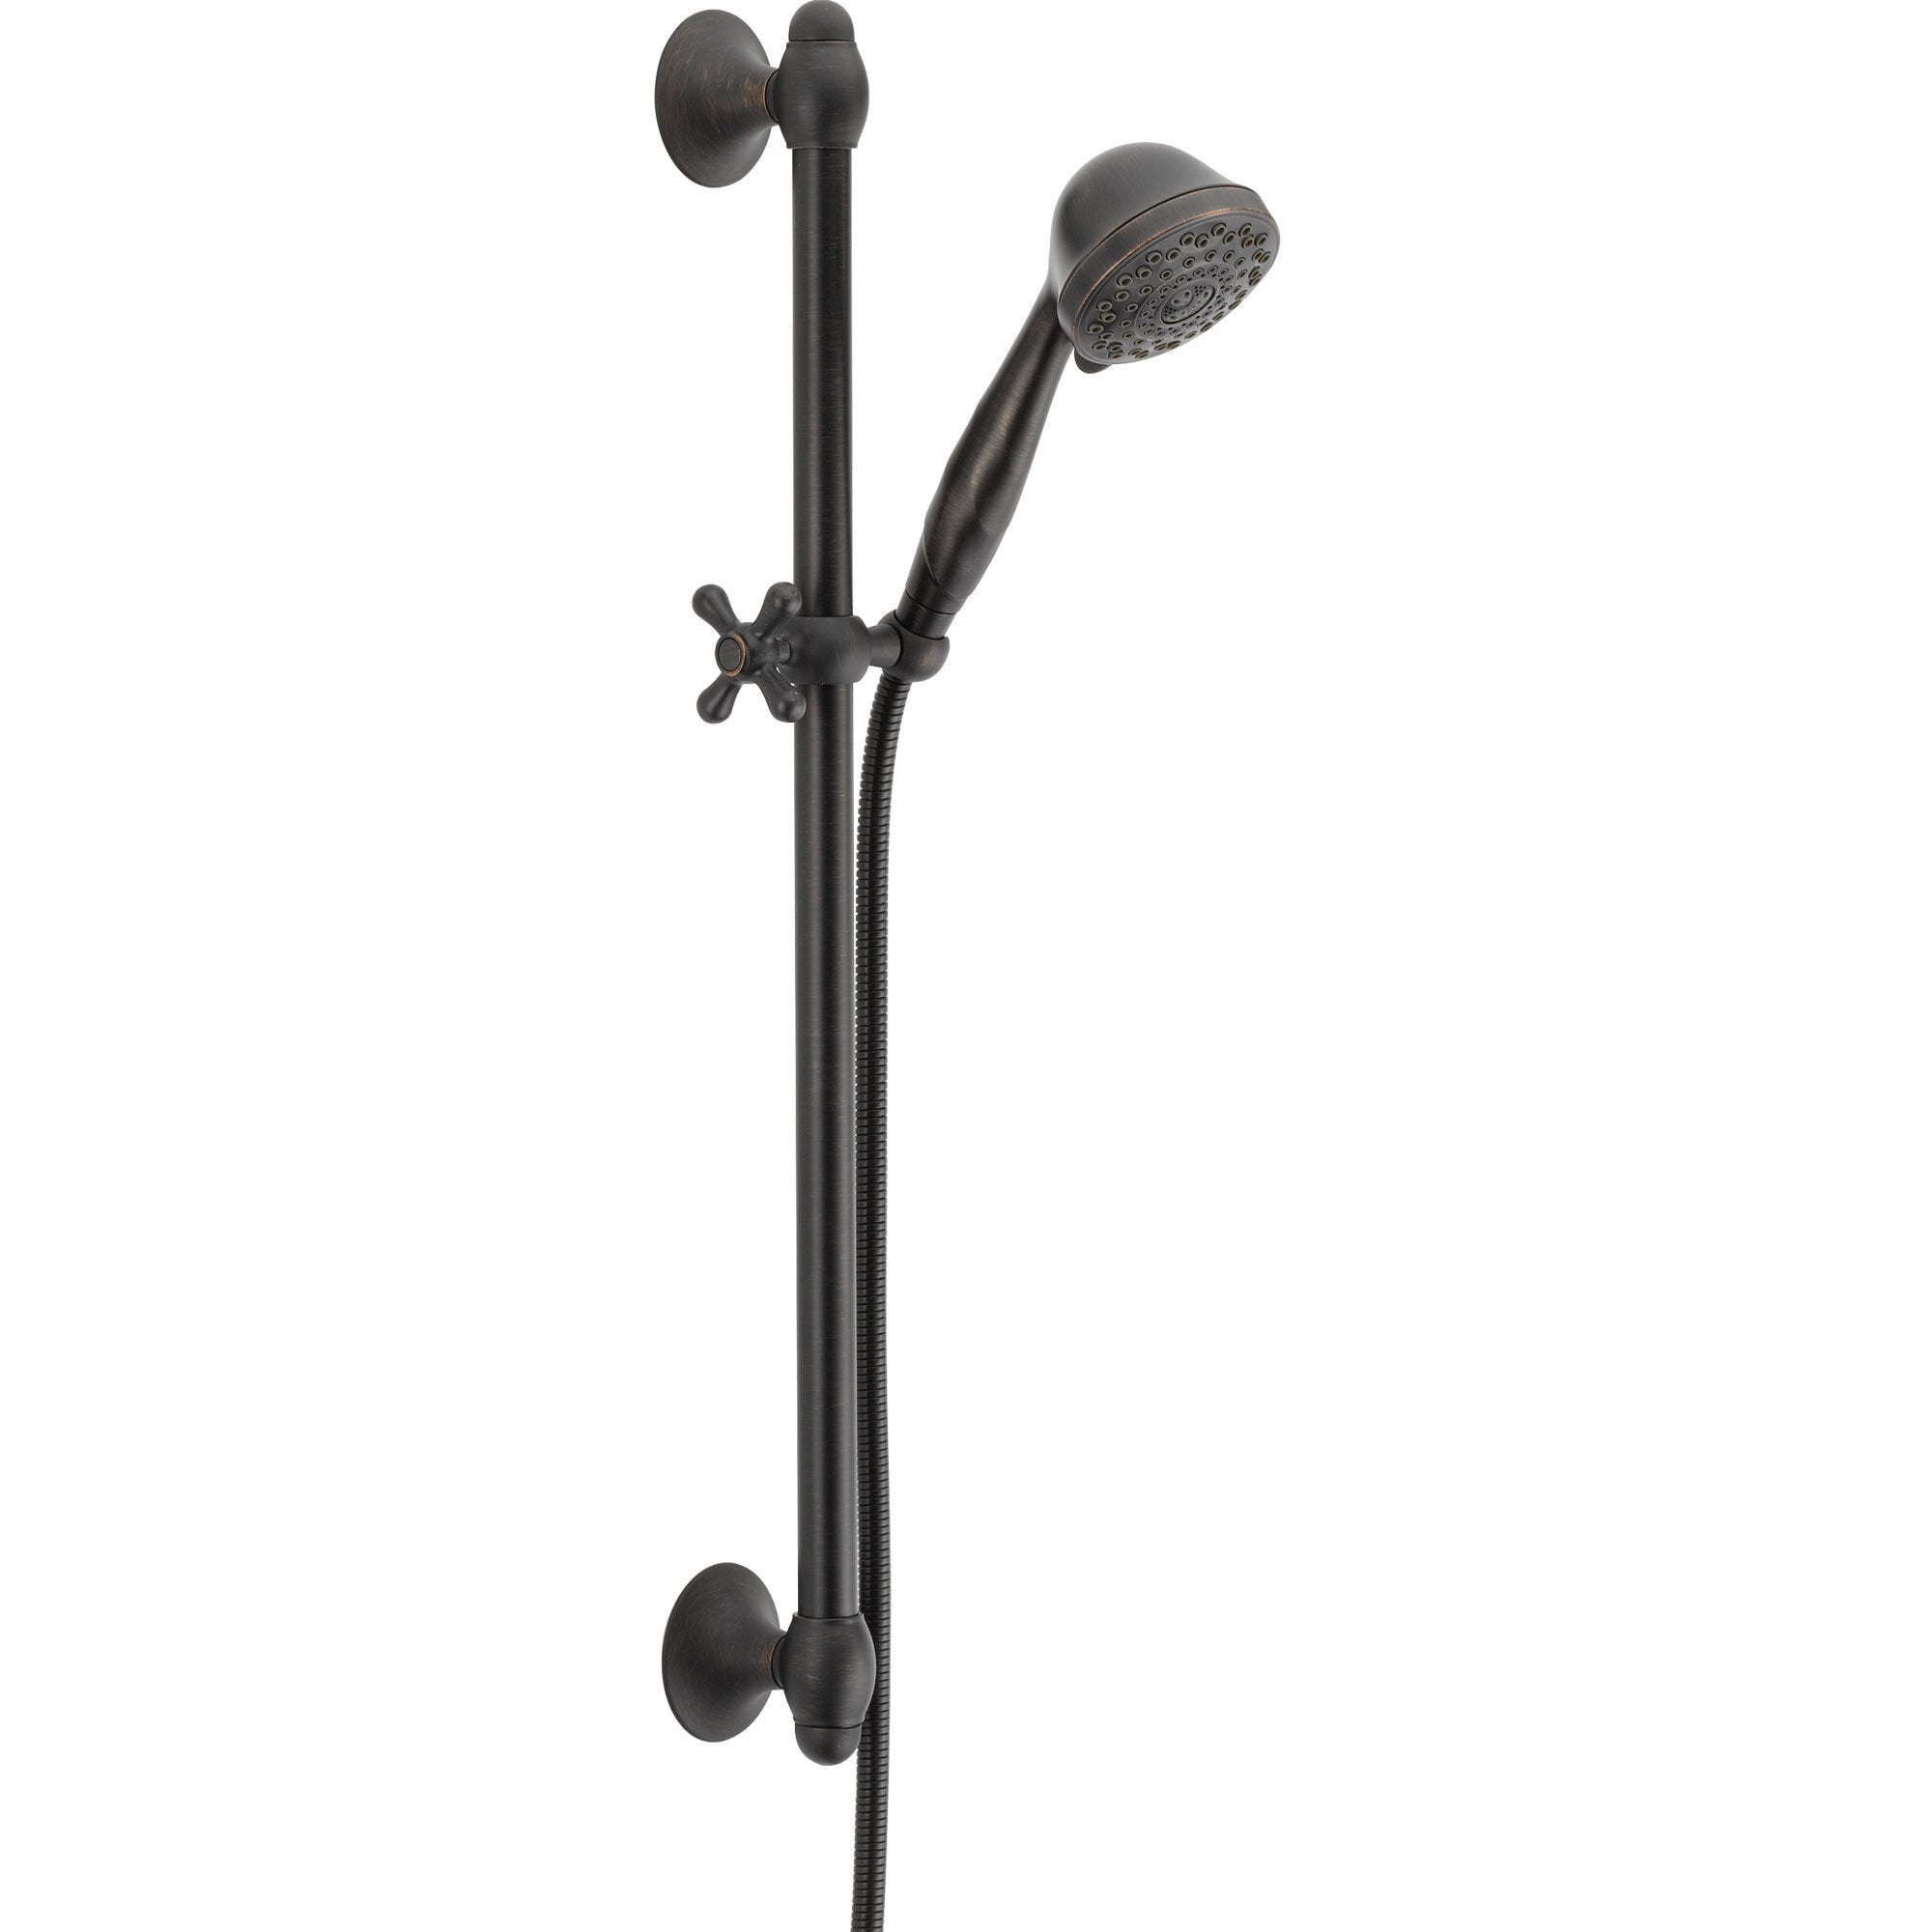 Delta 7-Setting Venetian Bronze Hand Held Shower Faucet with Slide Bar 567263